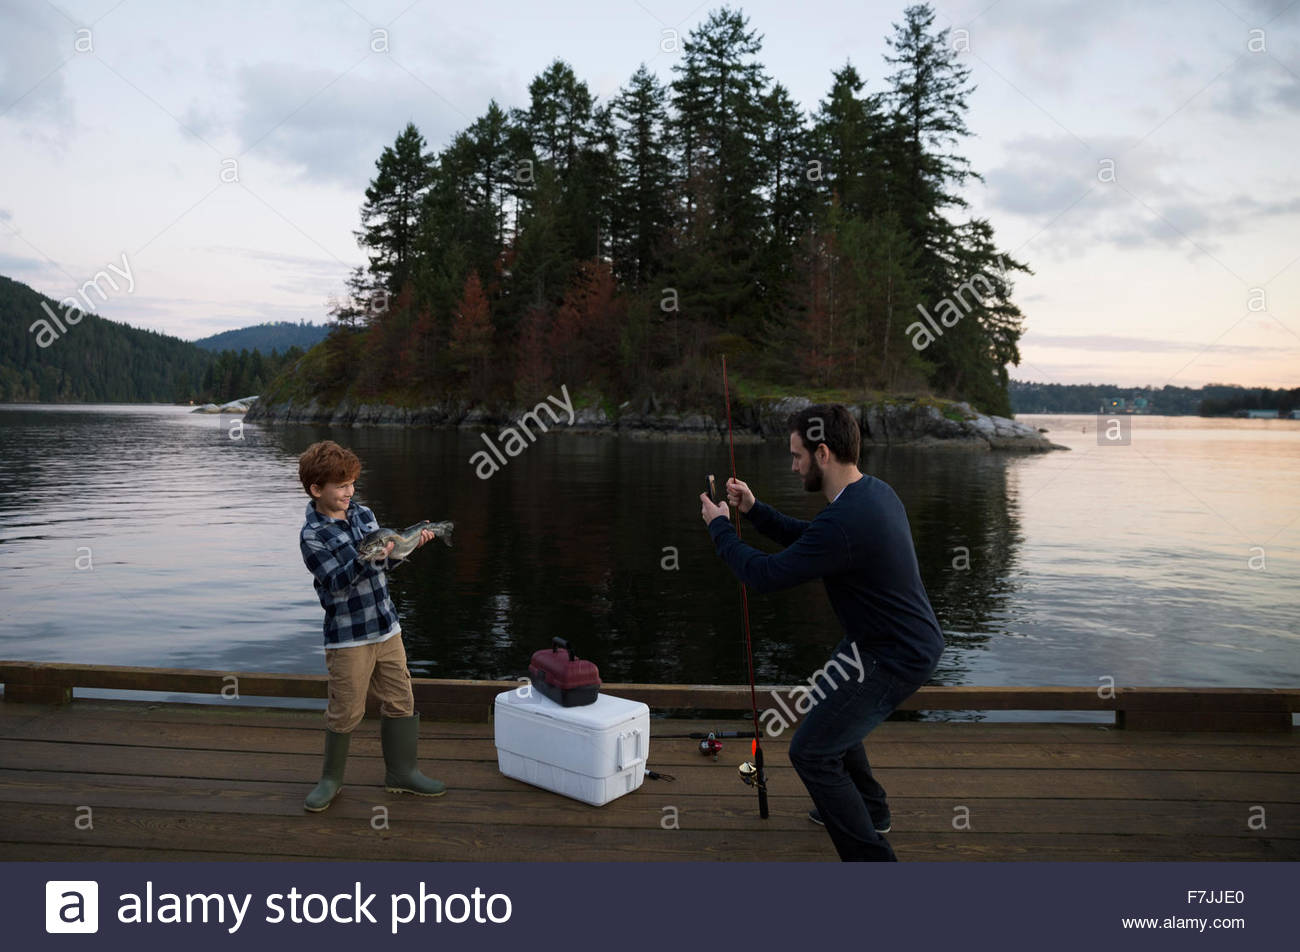 Father photographing son caught fish lake at sunset - Stock Image